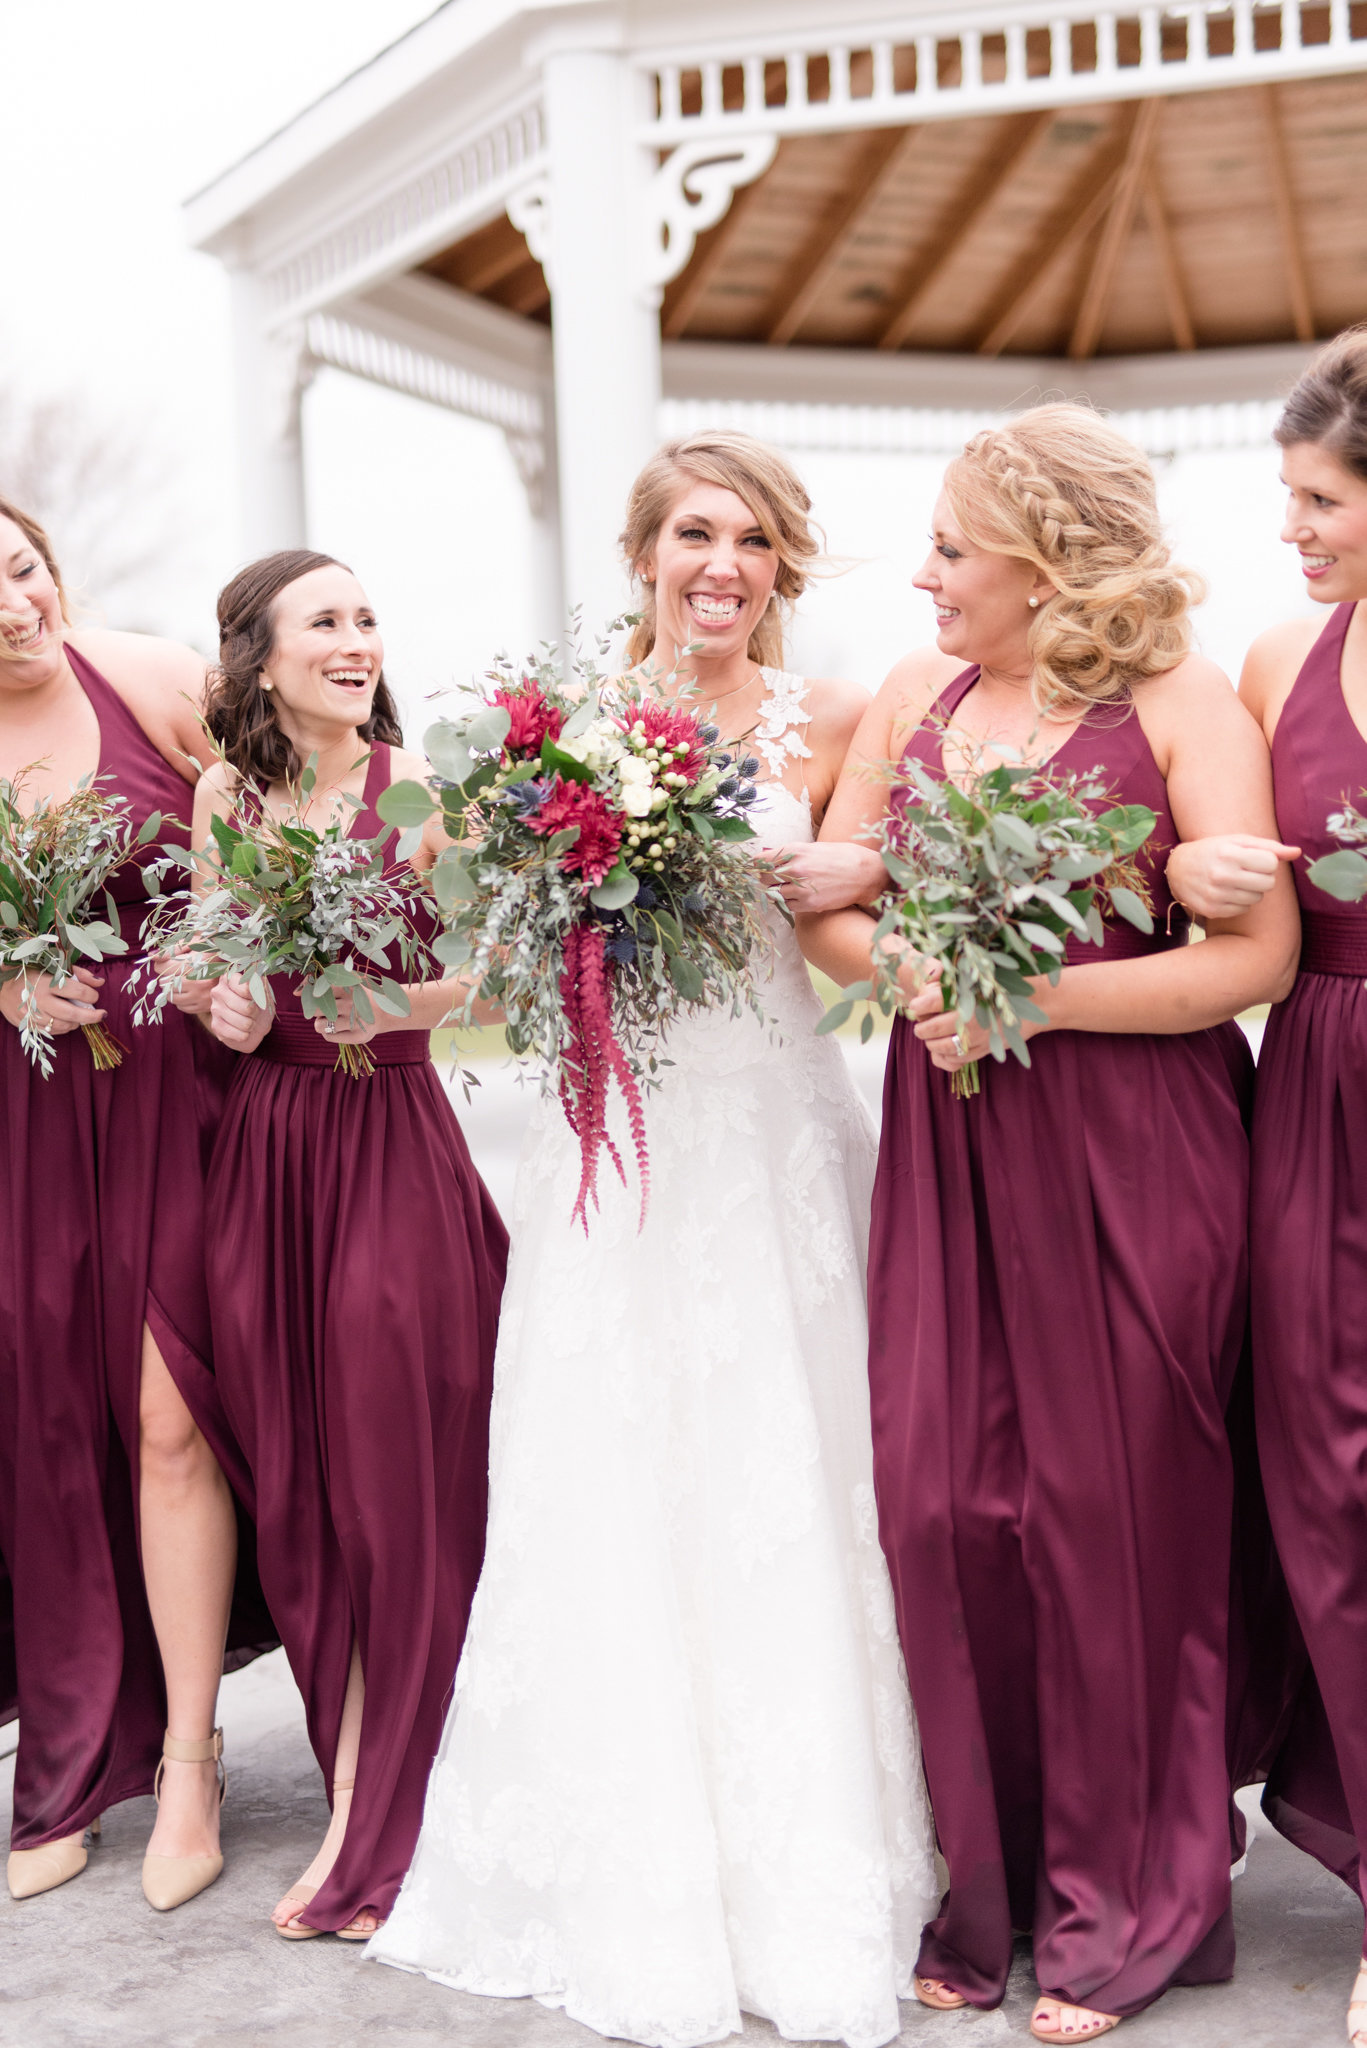 Bride and bridesmaids laugh while walking.